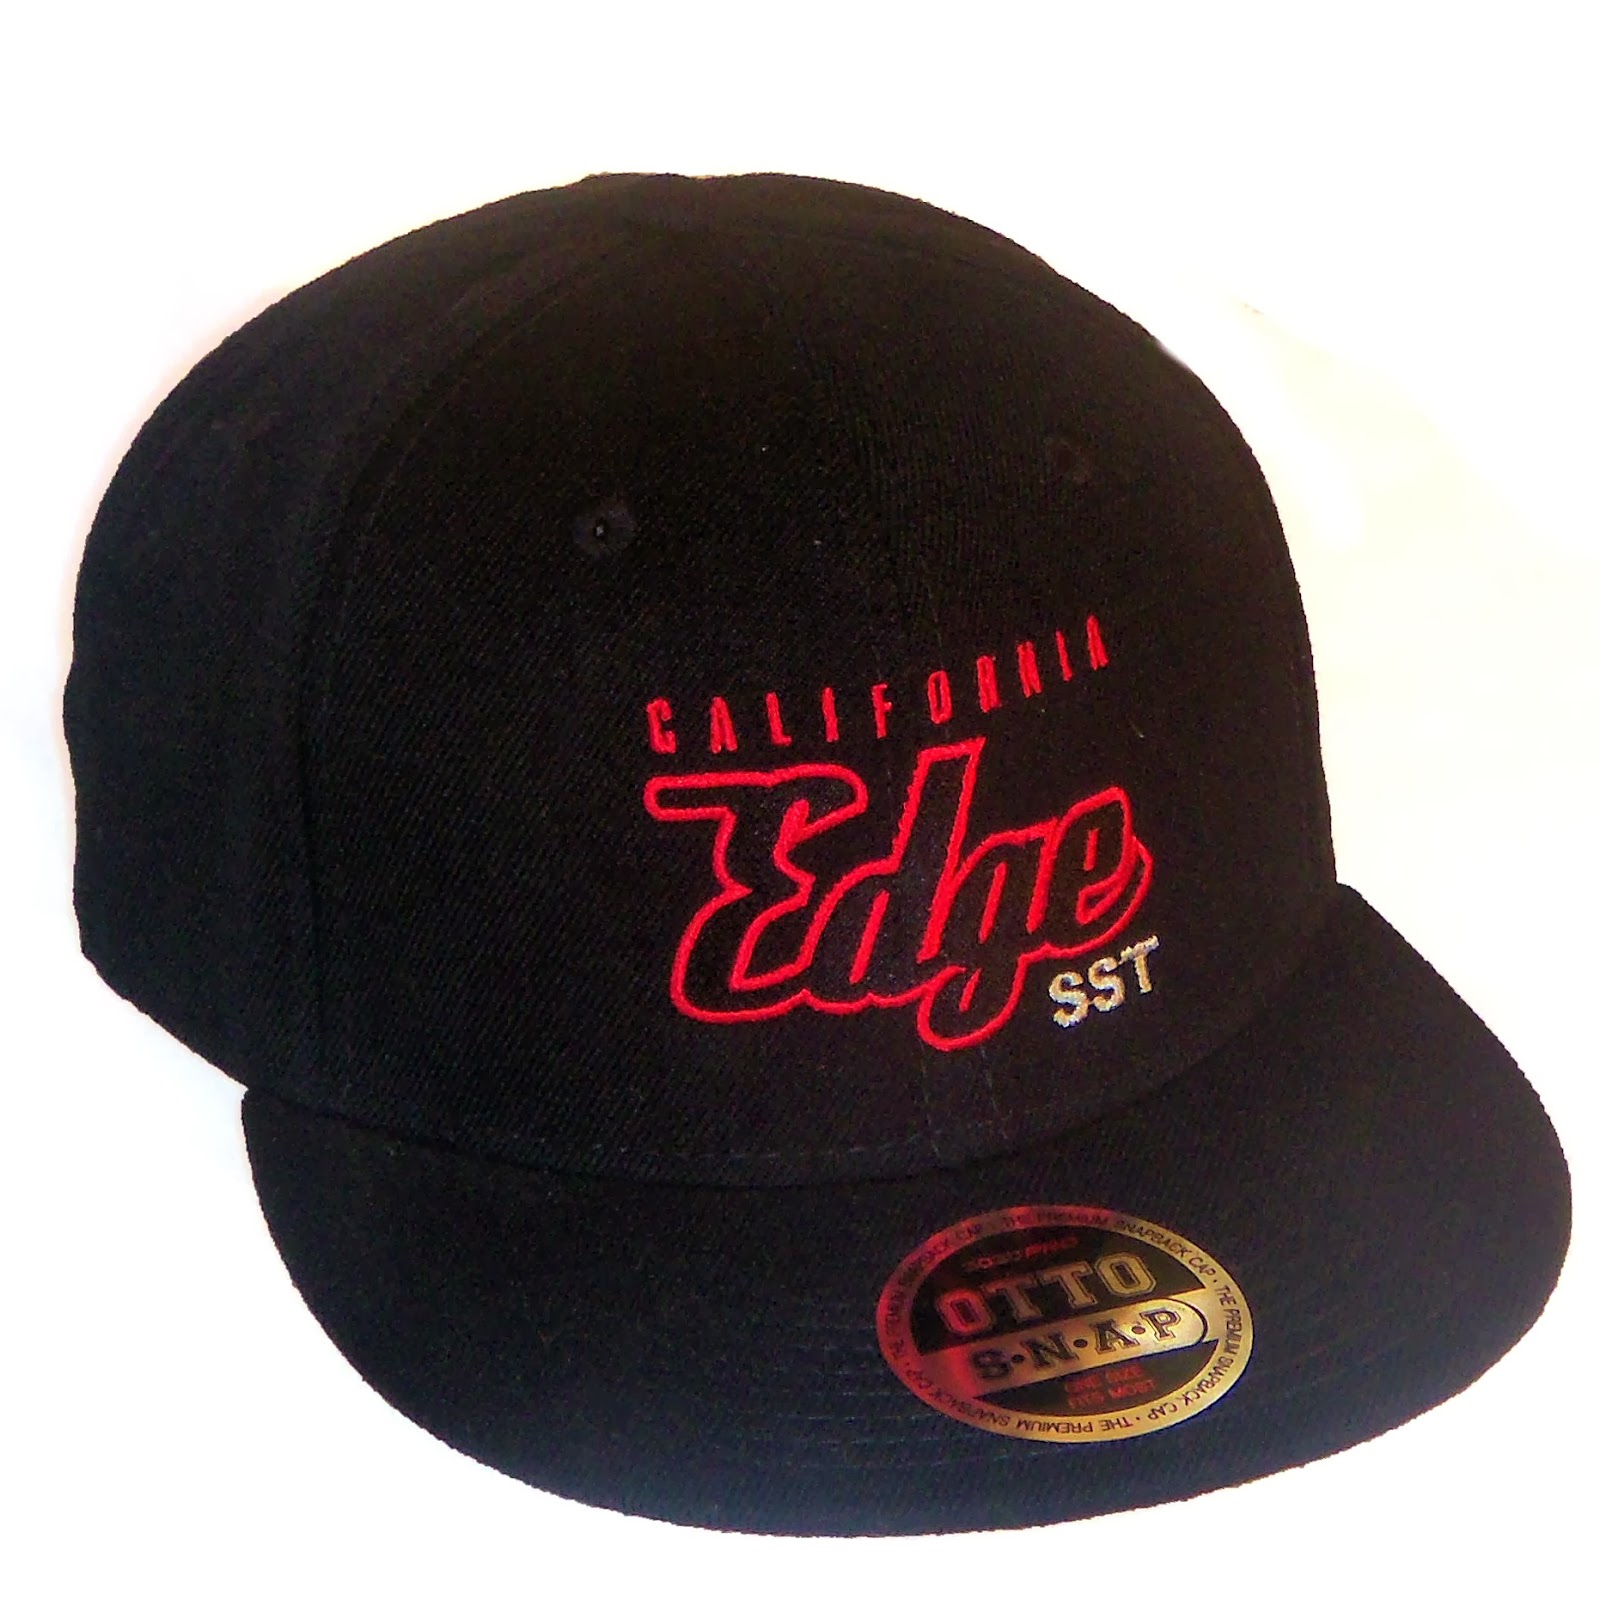 California Edge SST Flat Bill Snapback Cap Limited Edition